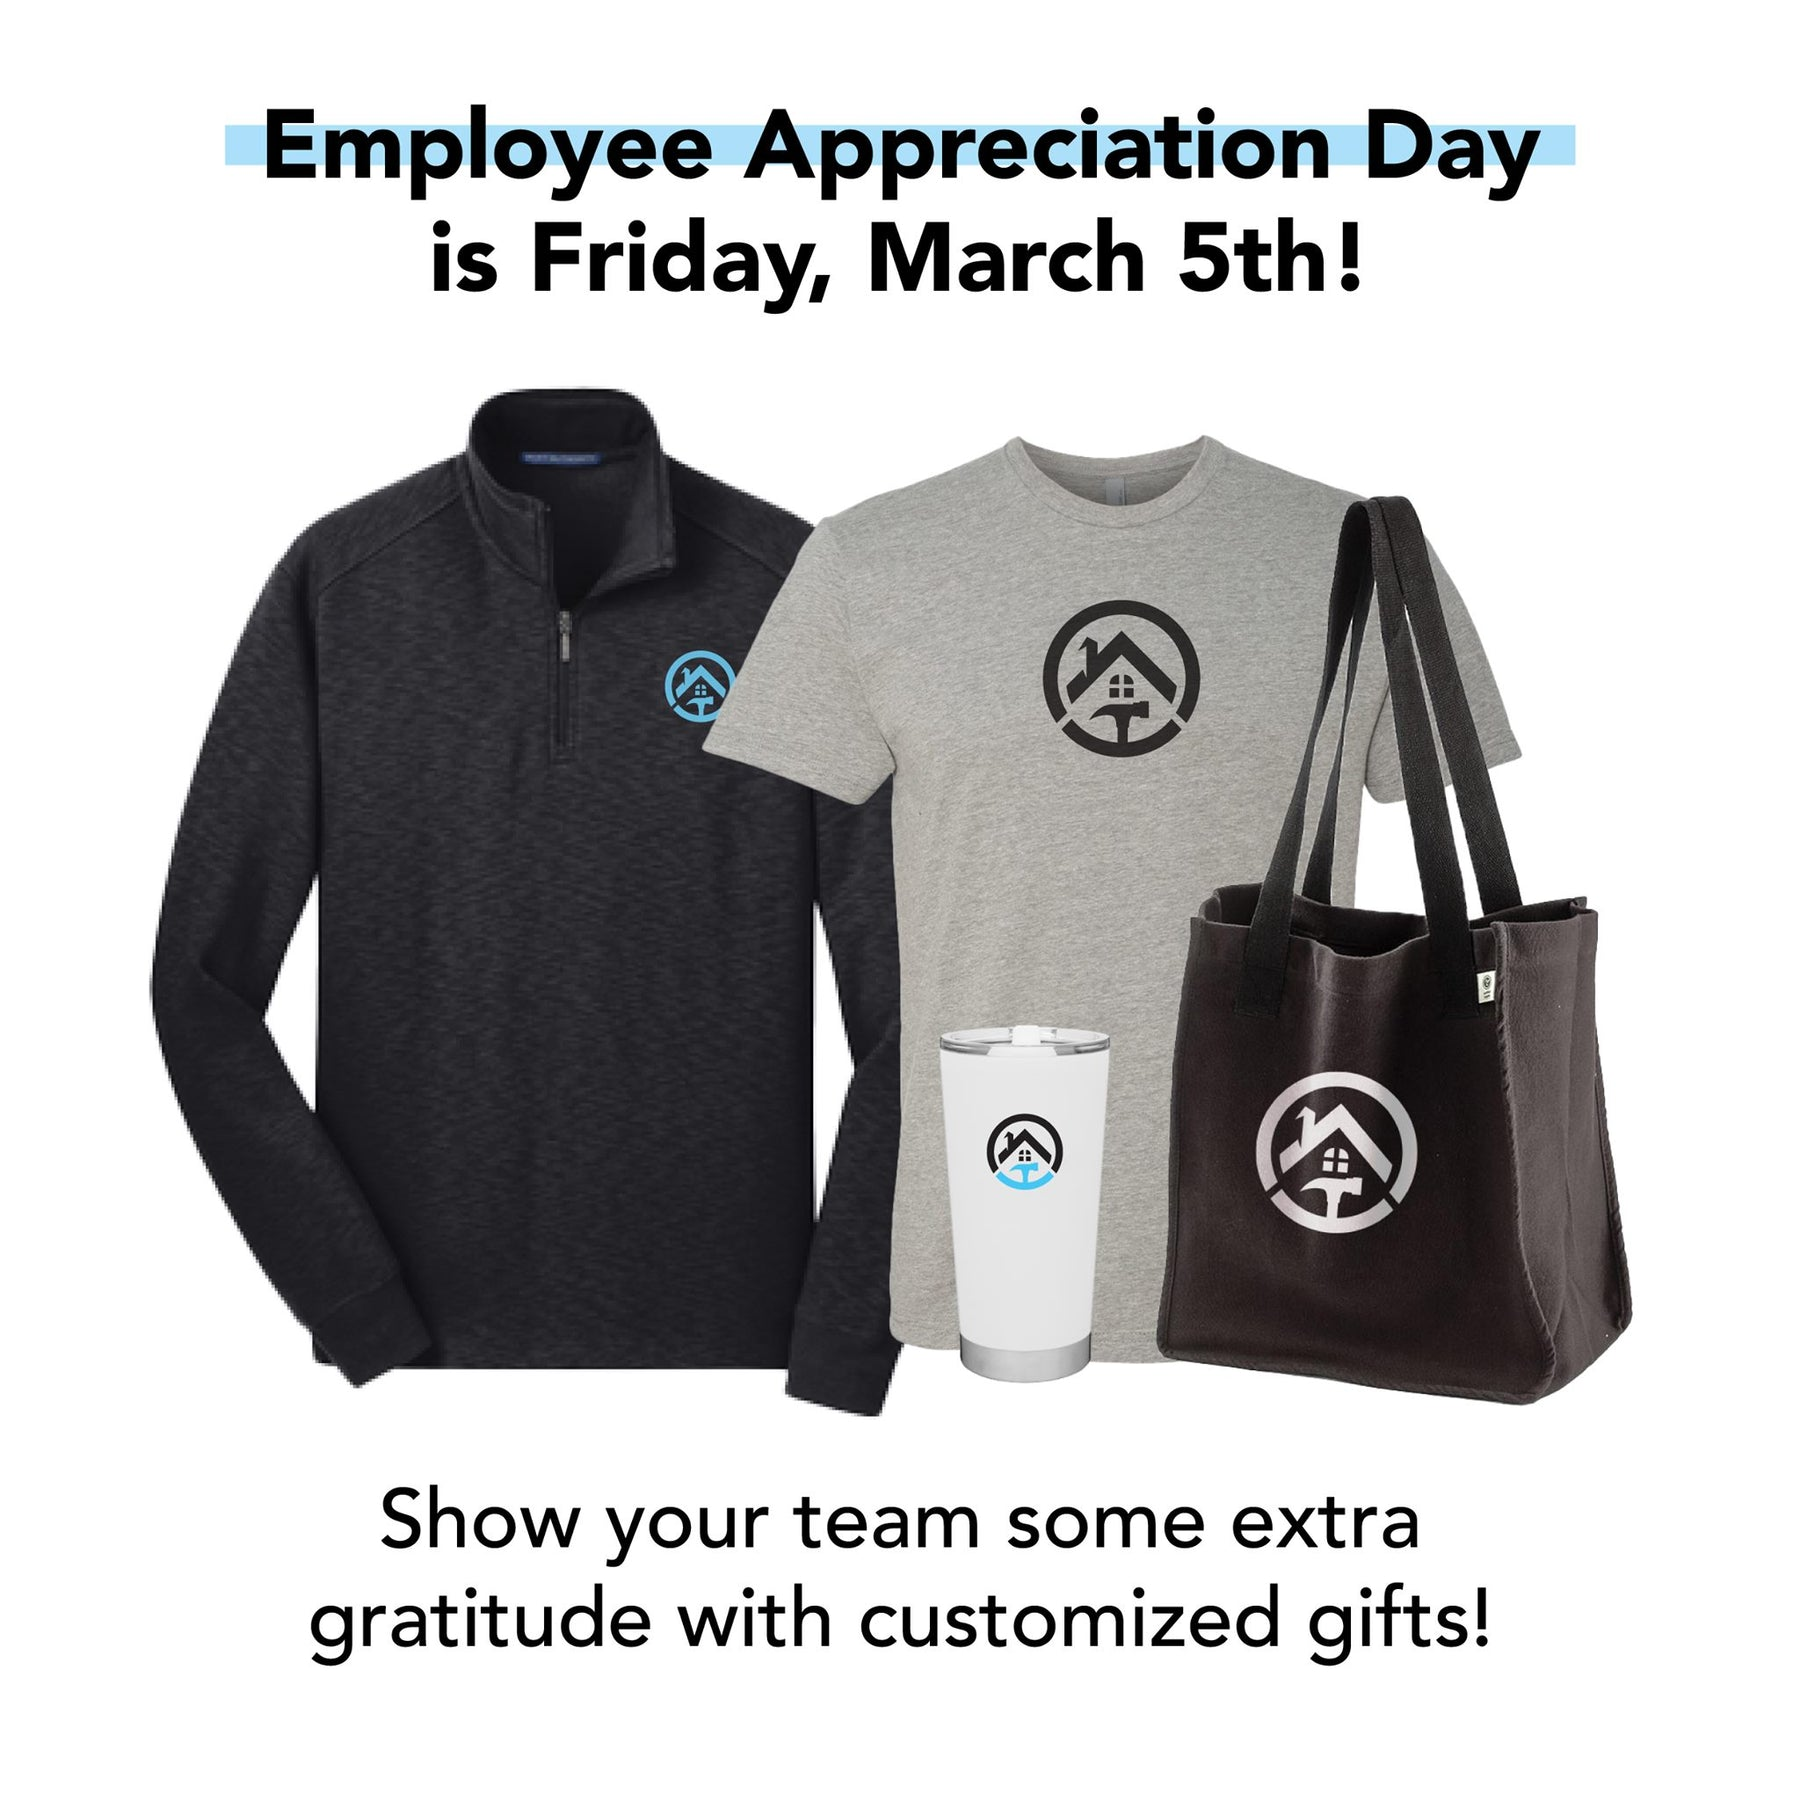 Get your gifts in time for Employee Appreciation Day (Show your employees how much you care)